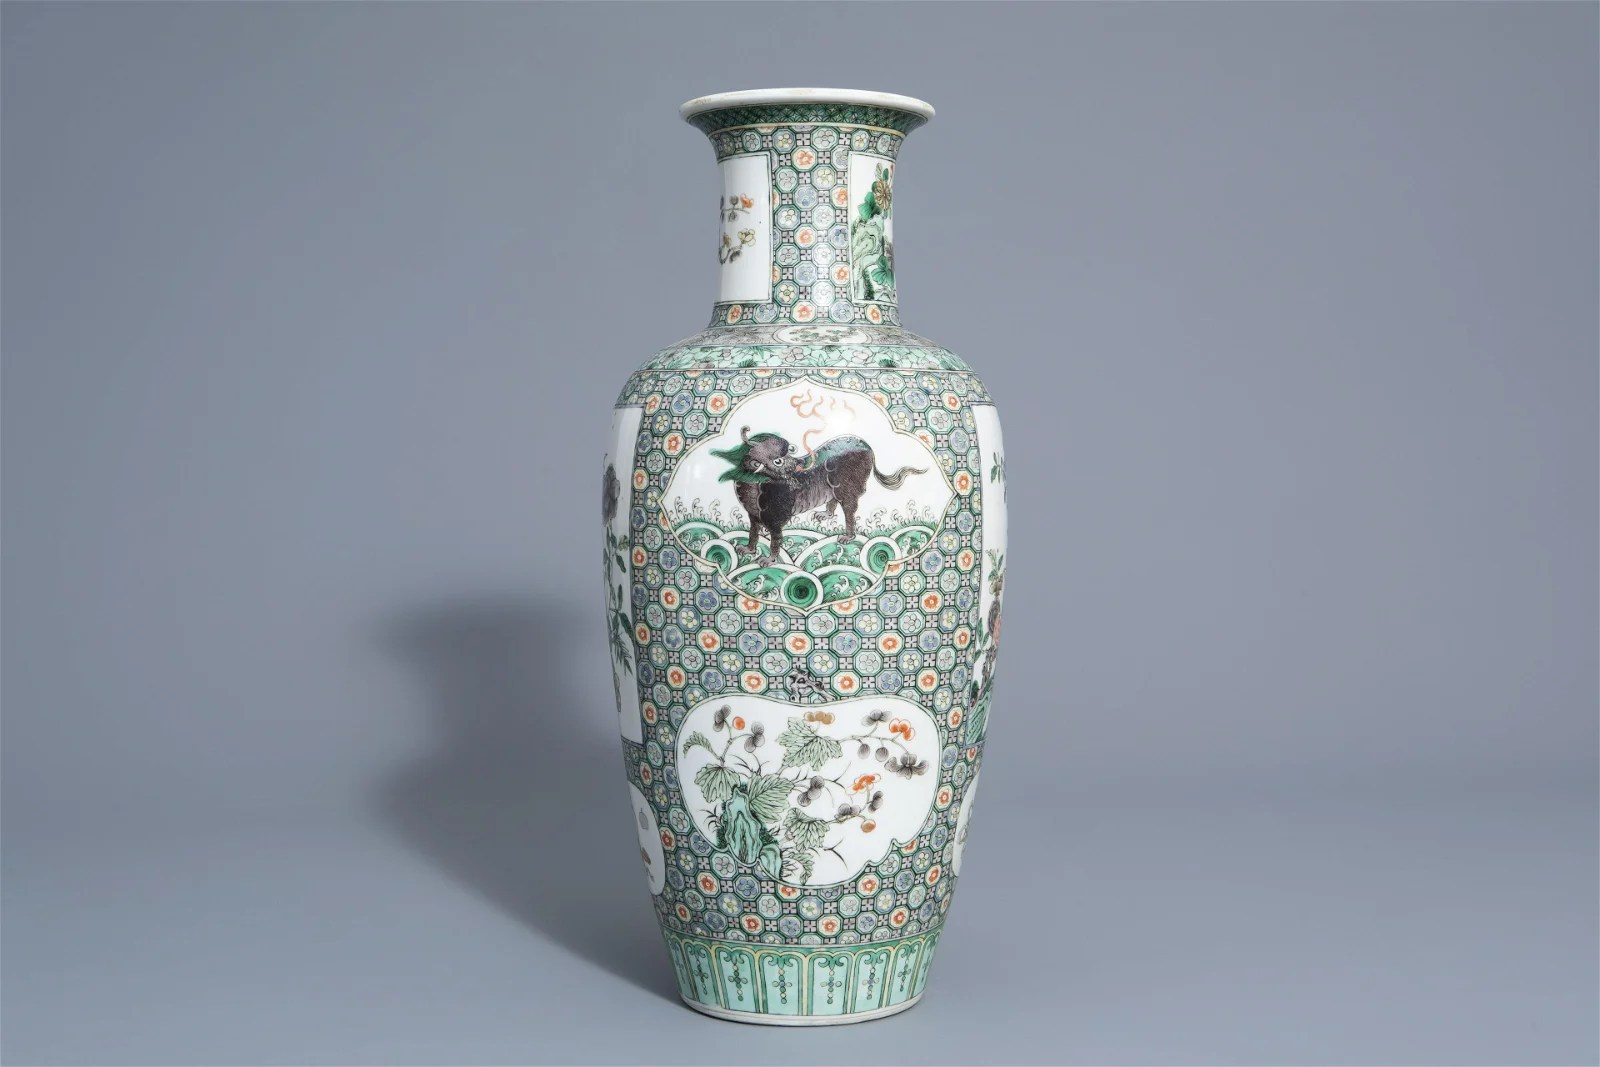 A Chinese famille verte vase with mythical beasts and